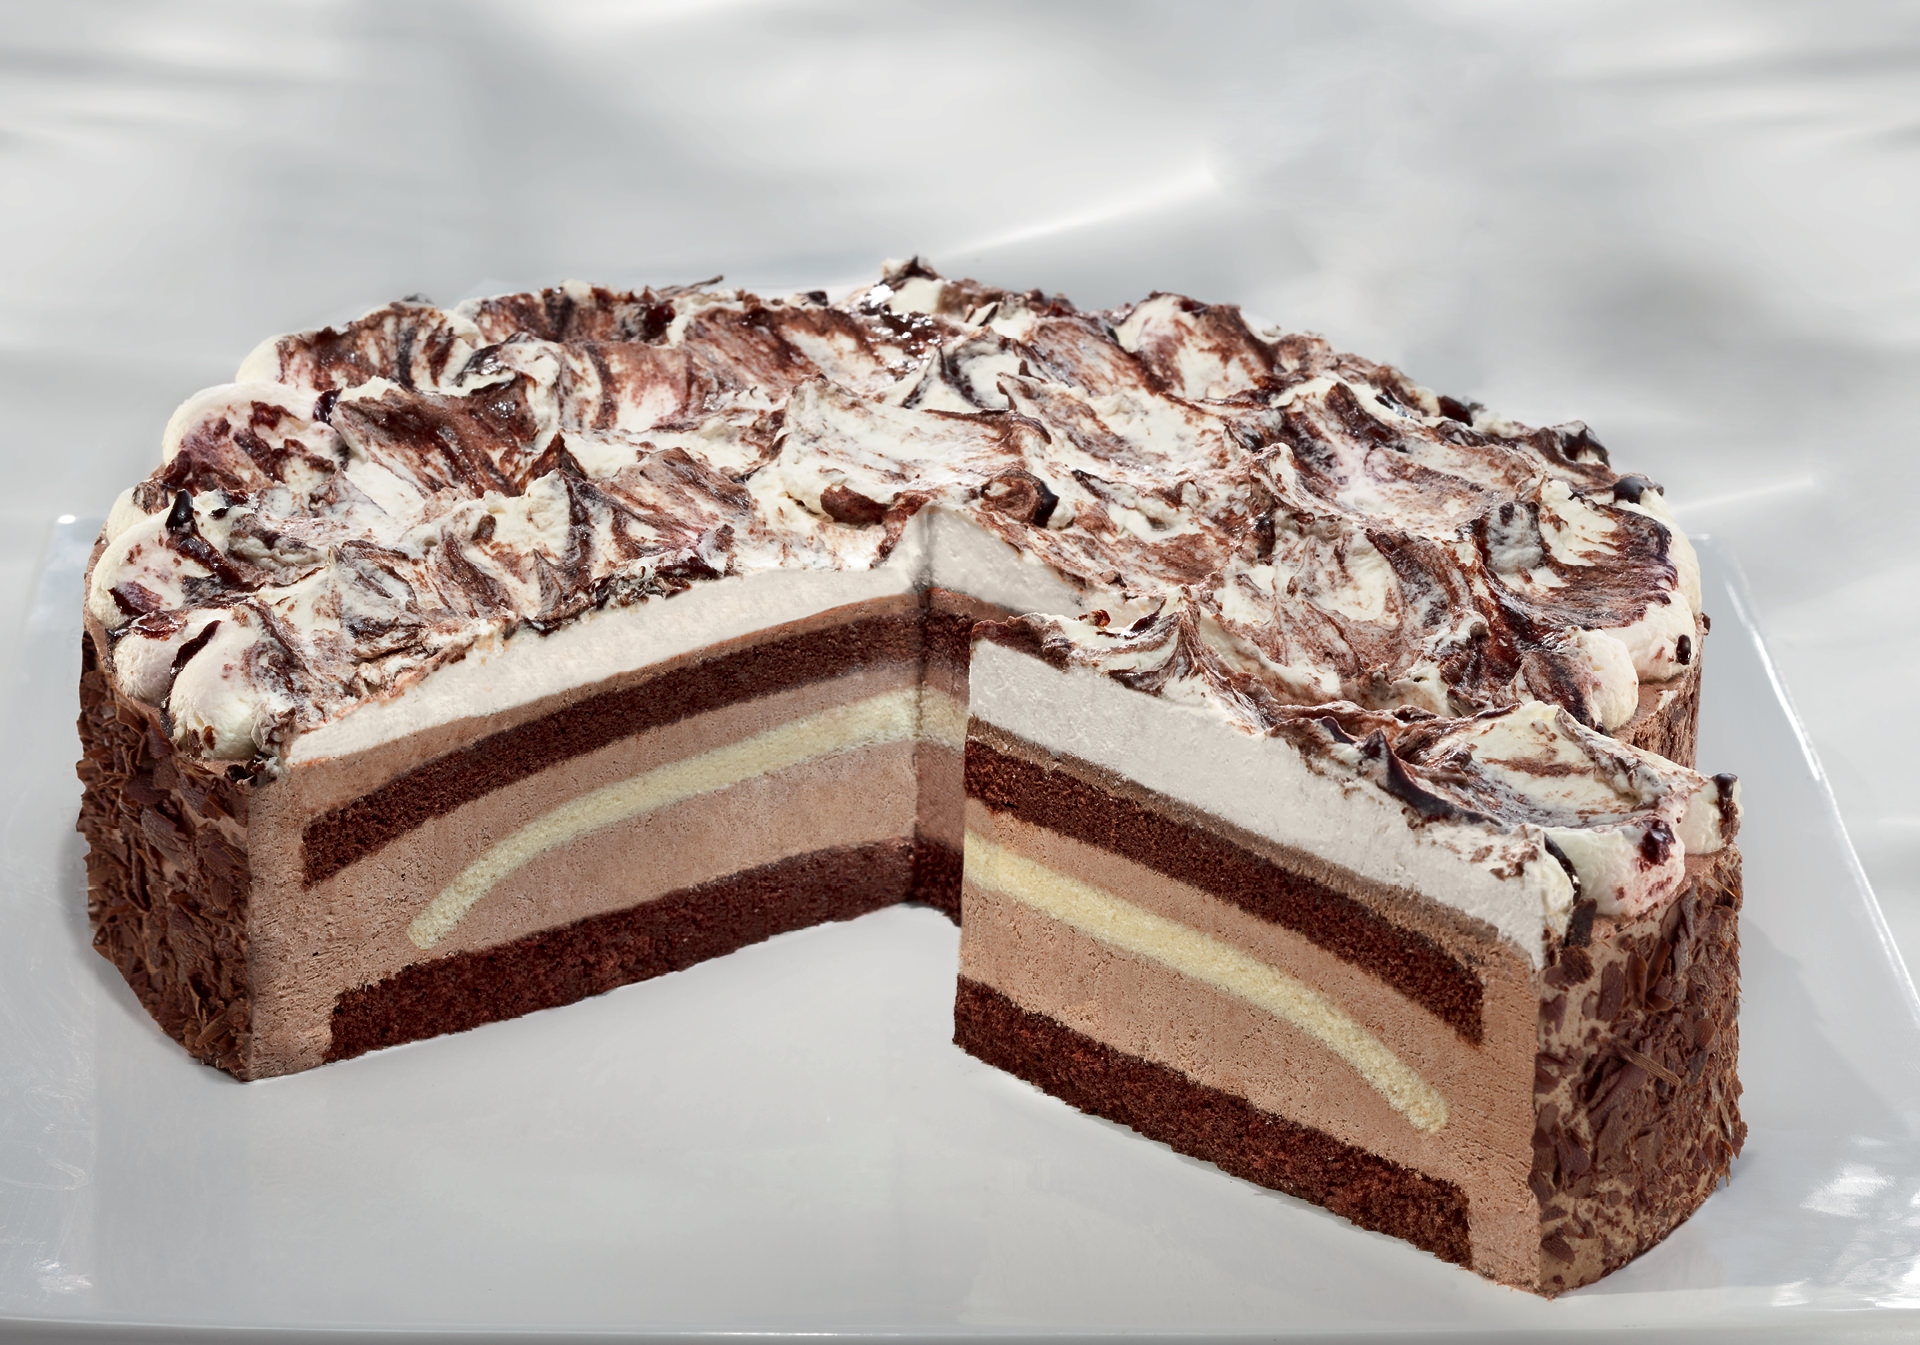 Chocolate Cream Gateau unsliced